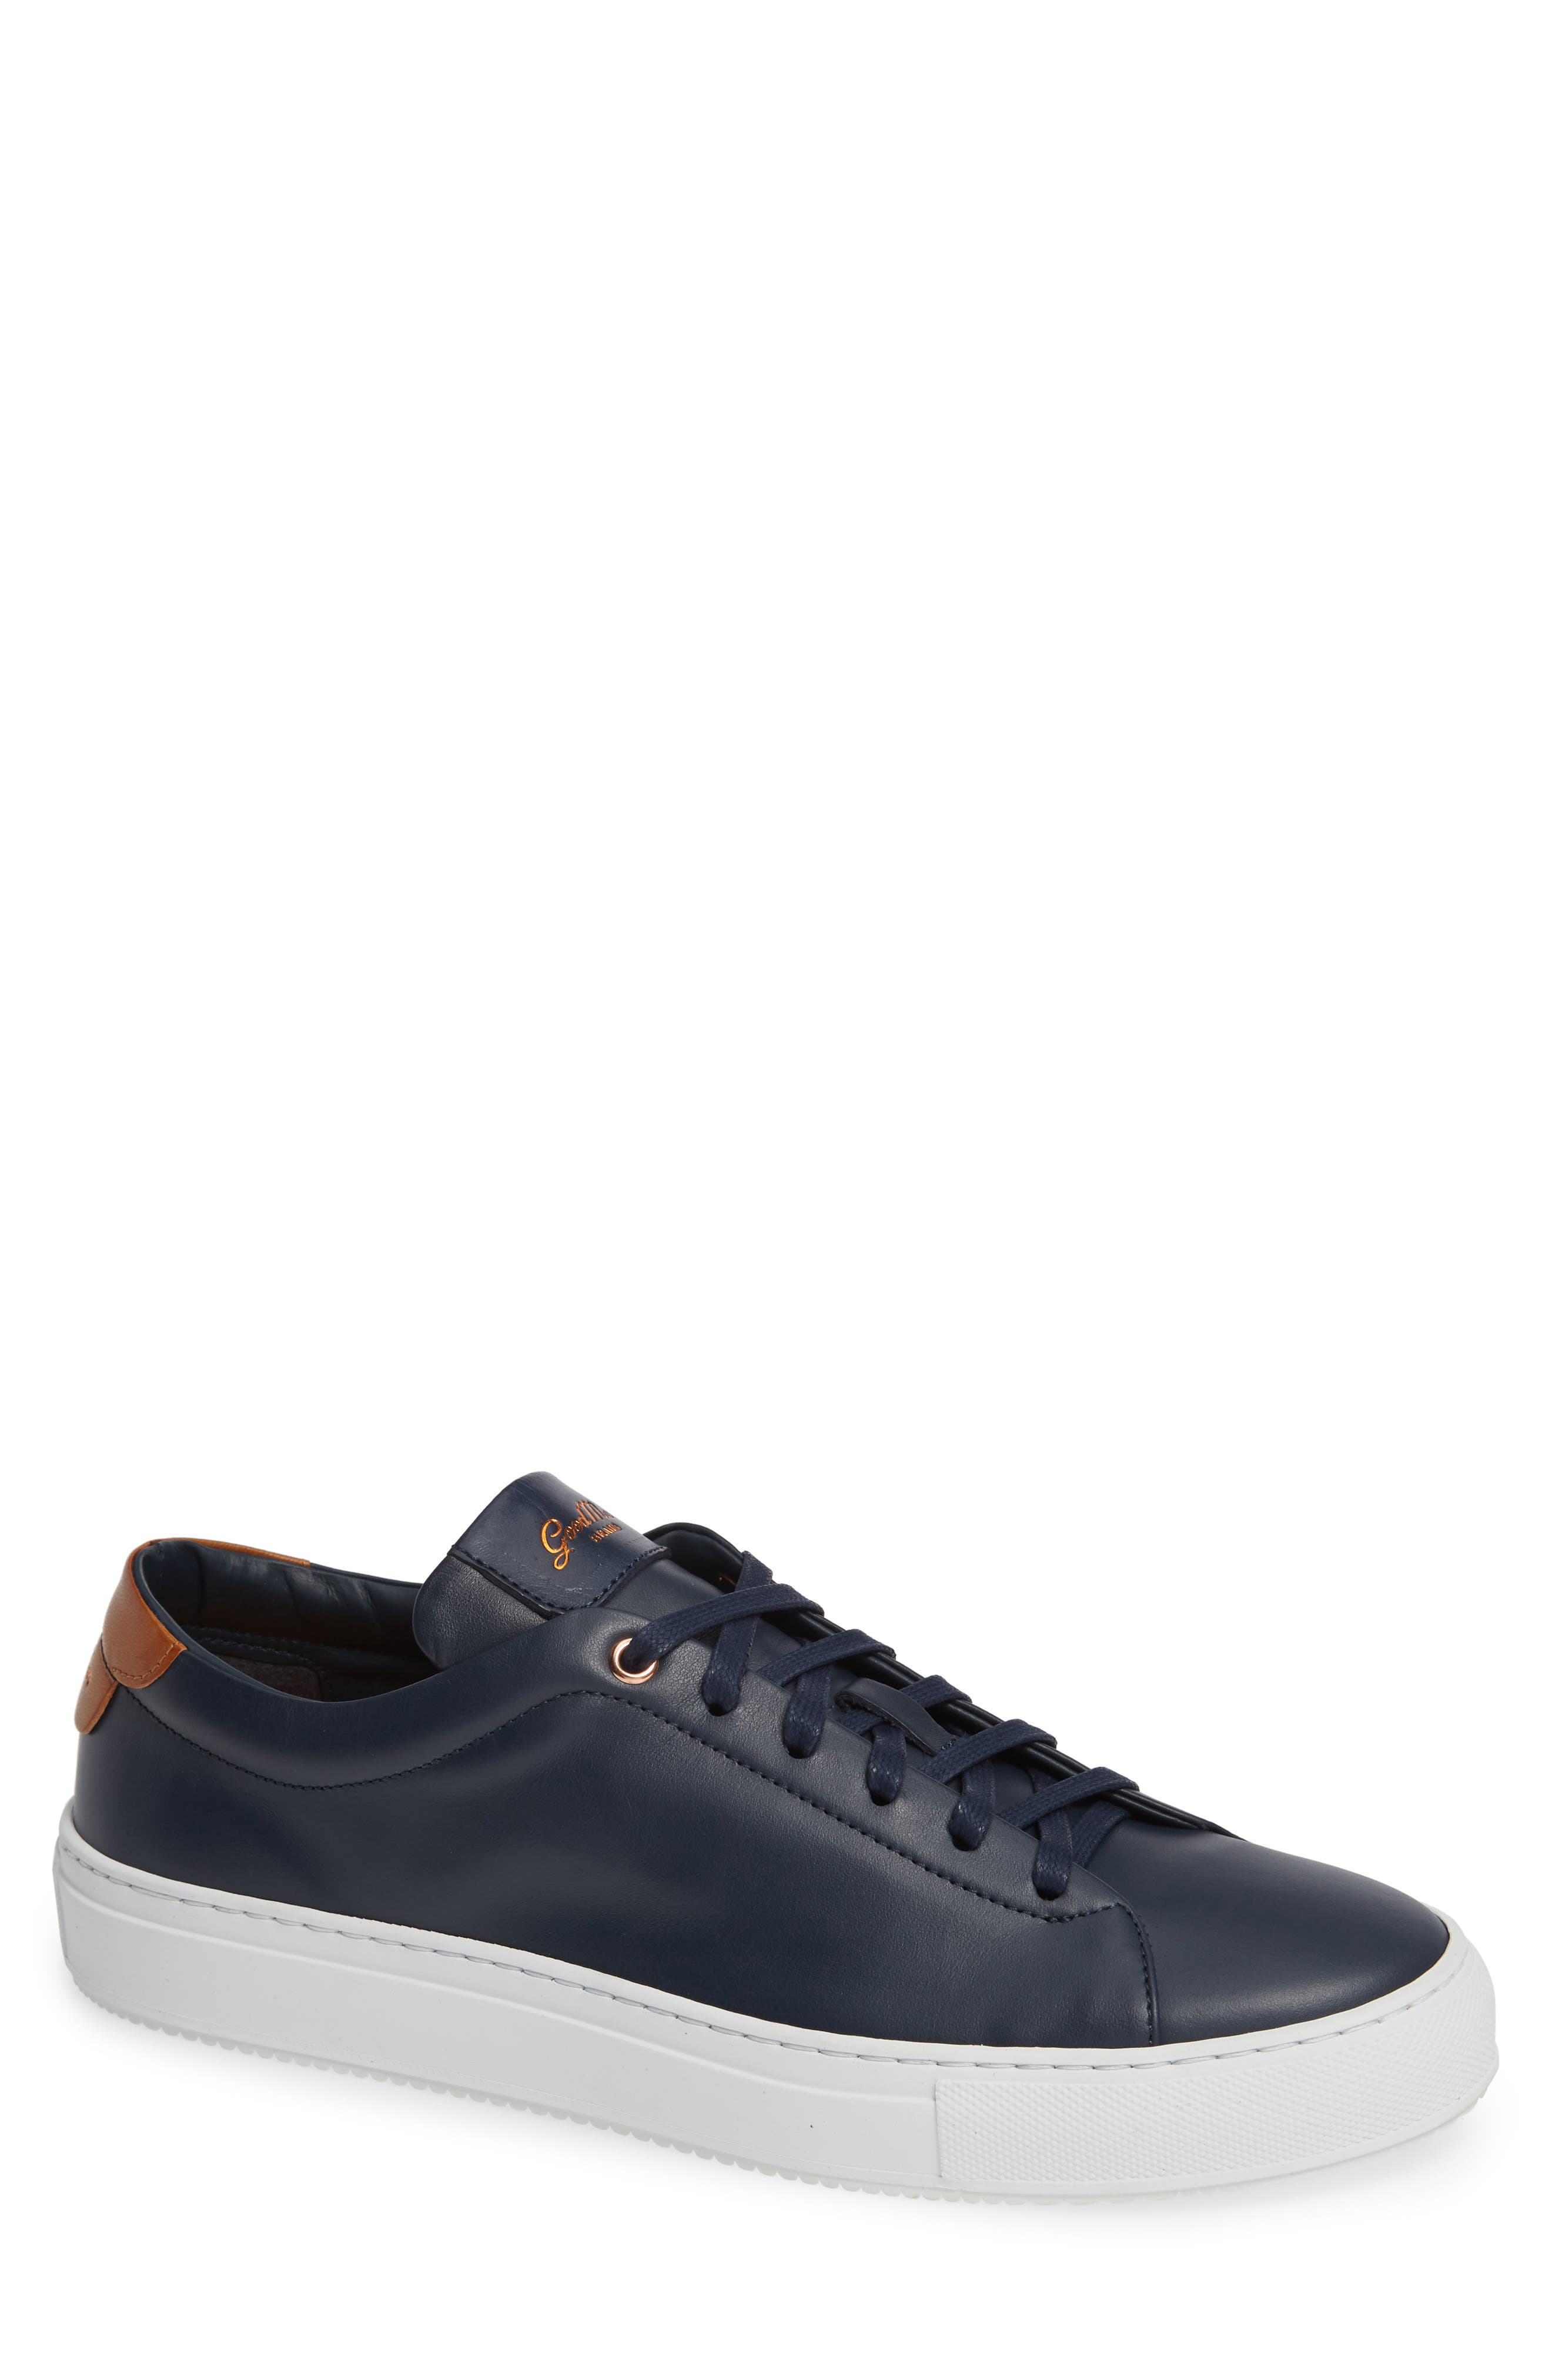 Edge Sneaker,                             Main thumbnail 1, color,                             NAVY LEATHER